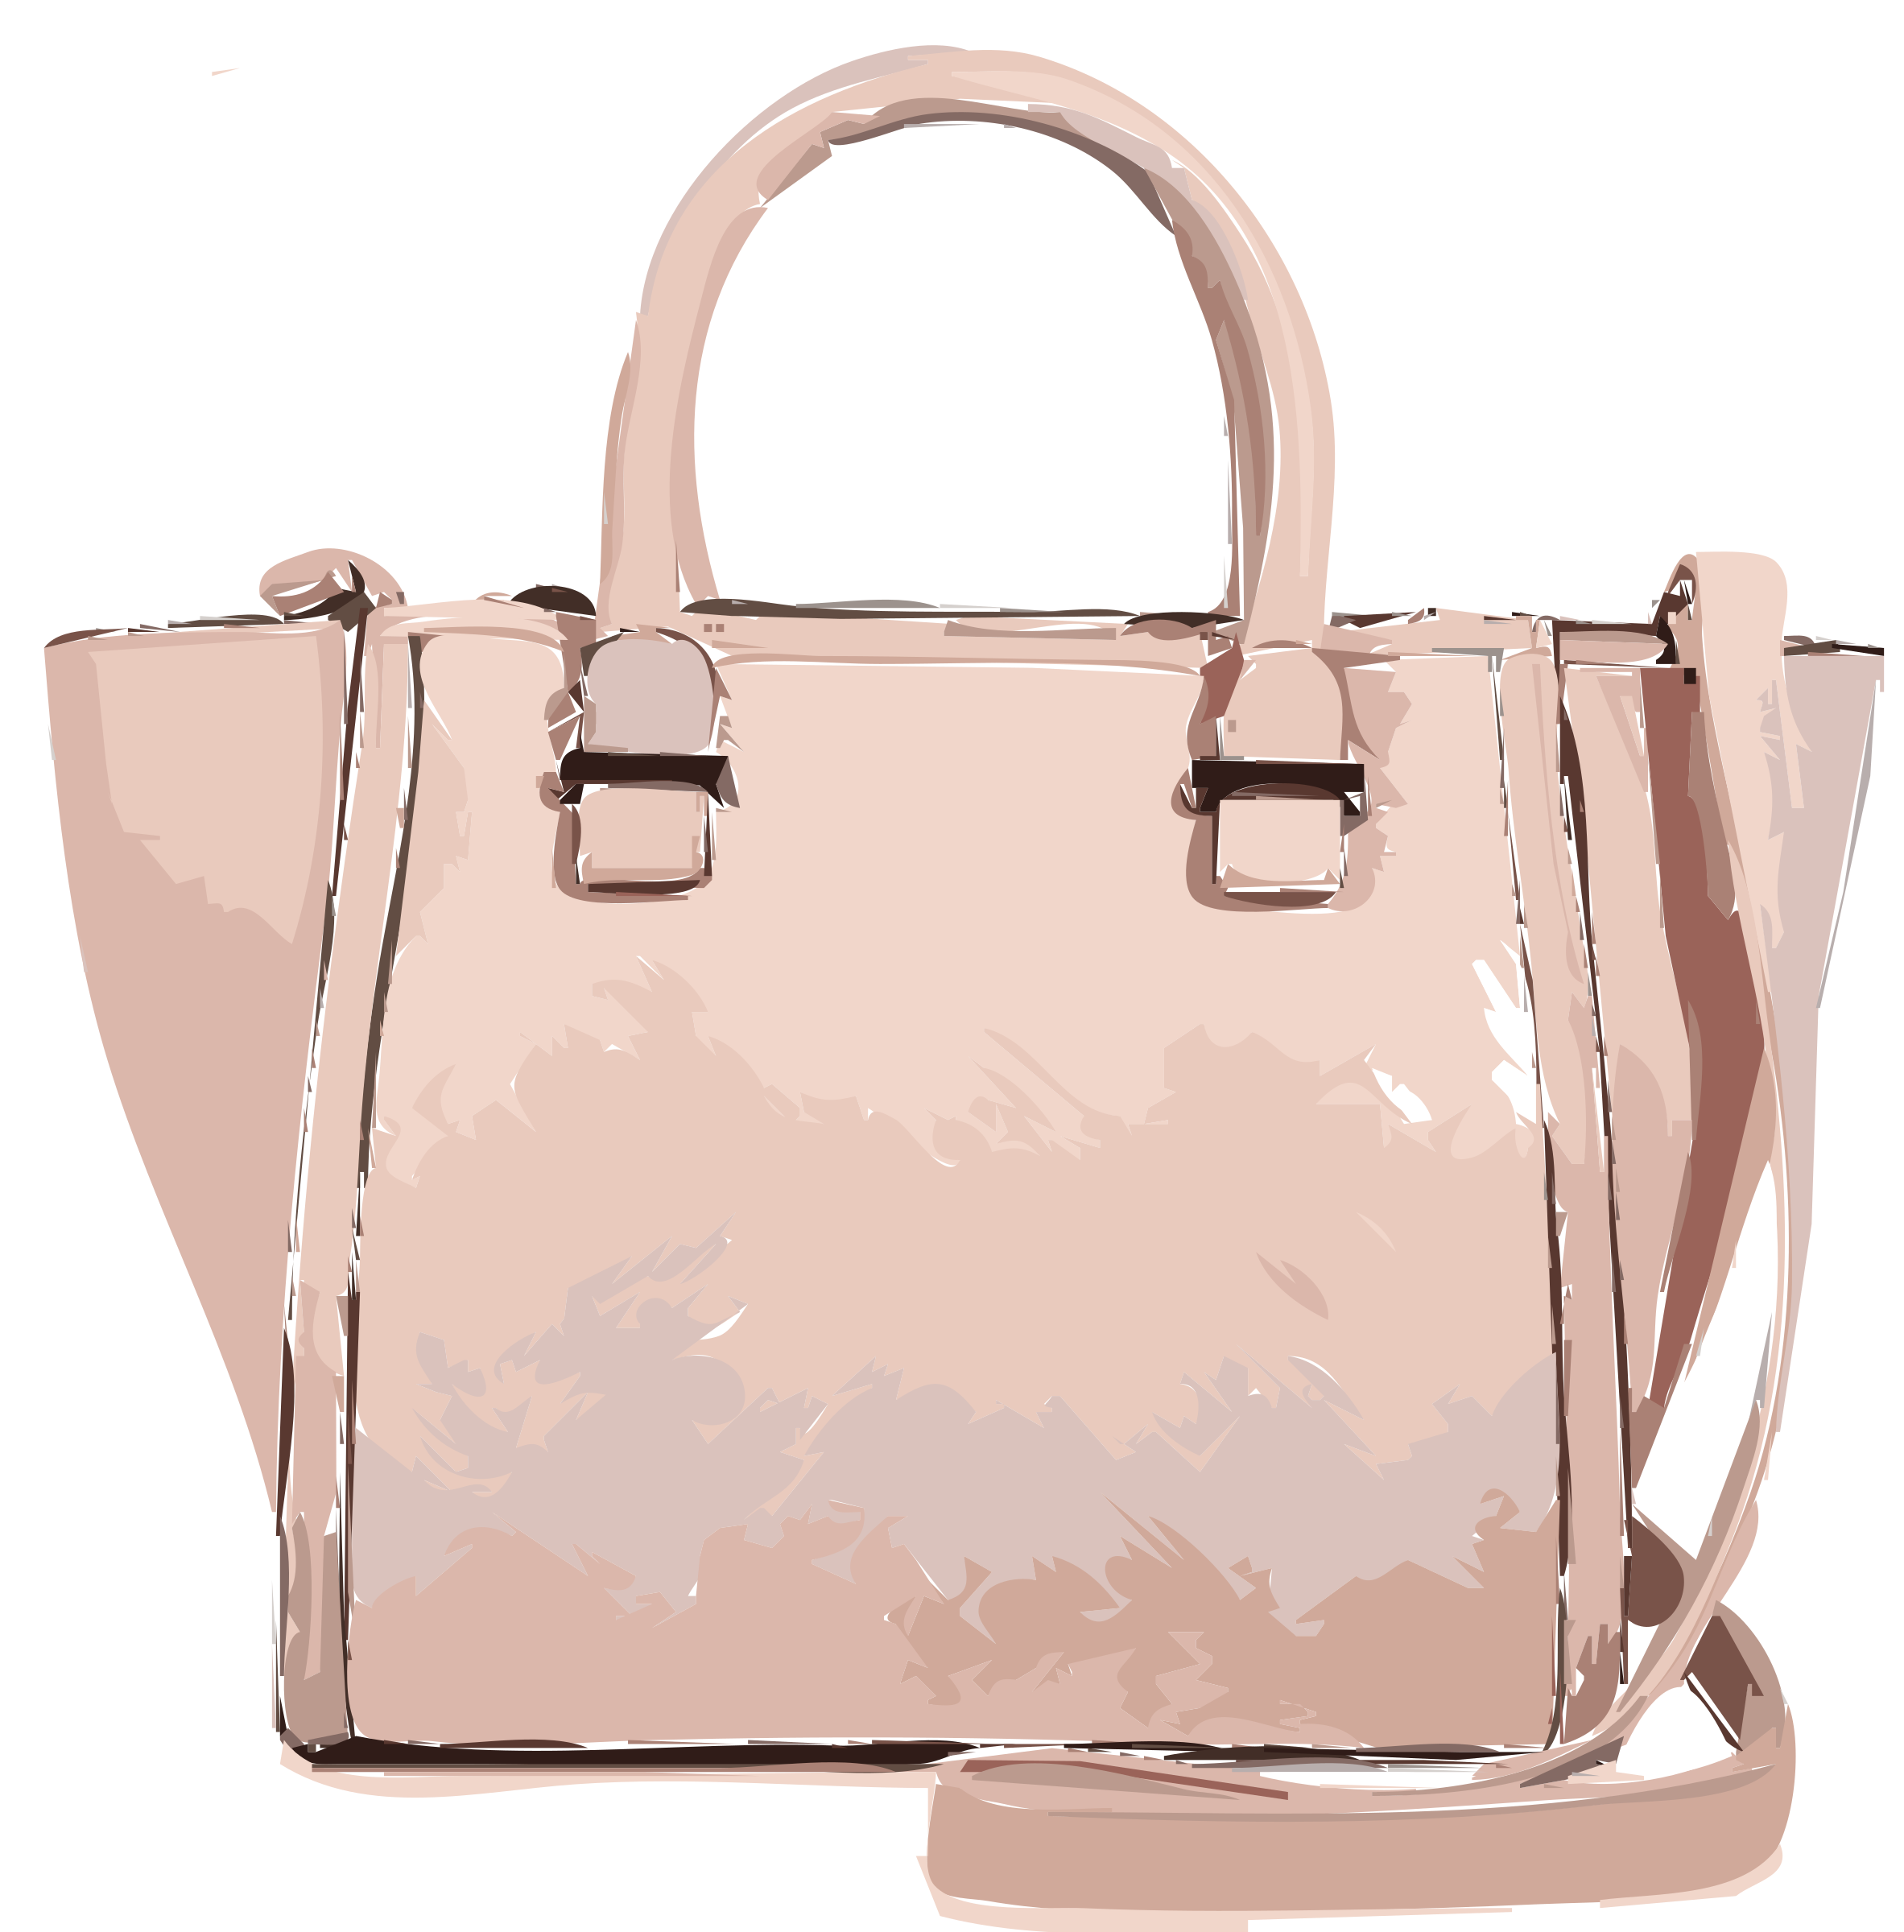 Light Pink Bag NO LOGO by rejon